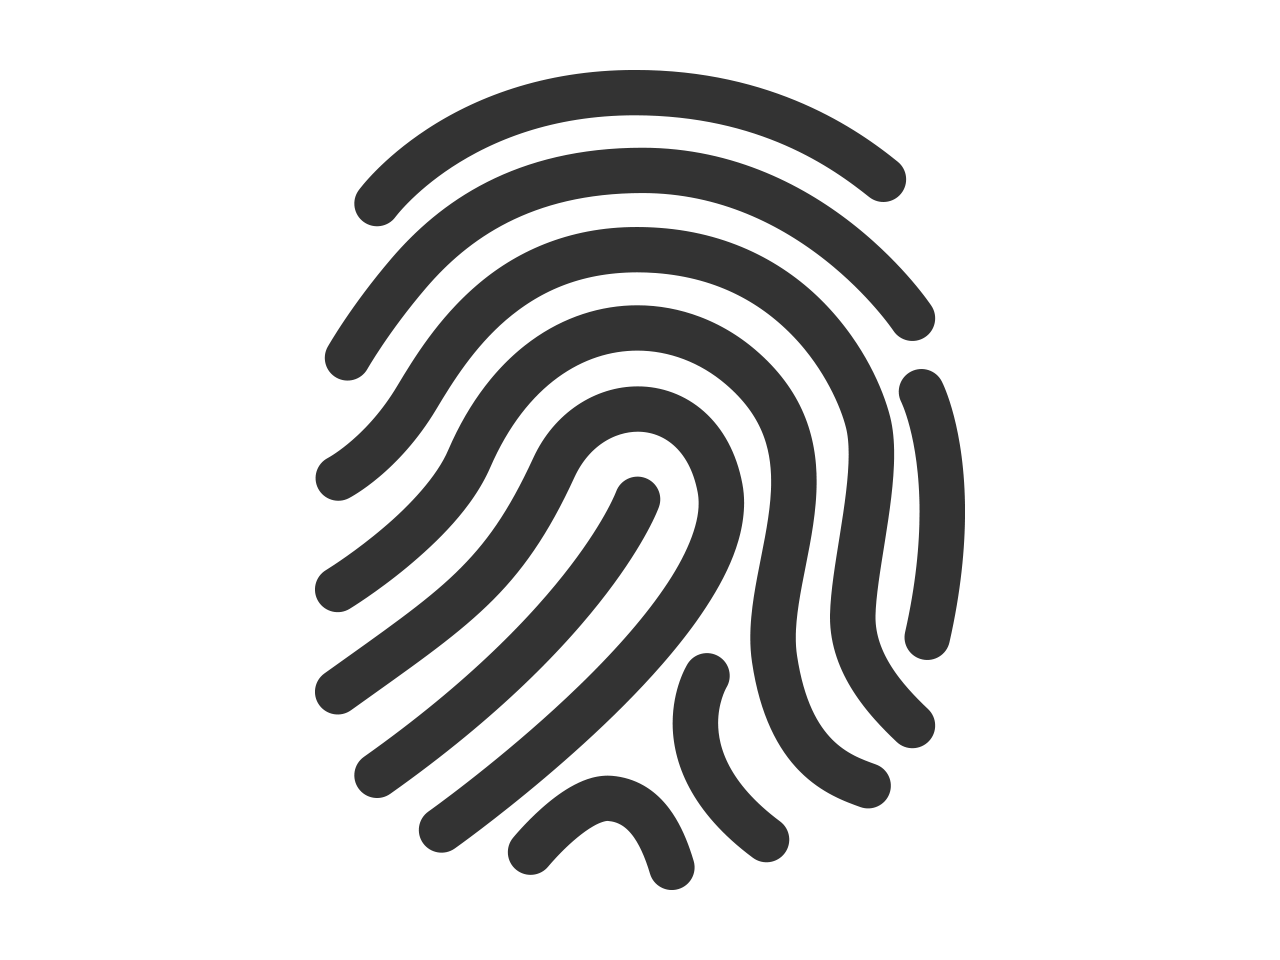 image transparent stock Fingerprint clipart clear background. Png transparent images all.